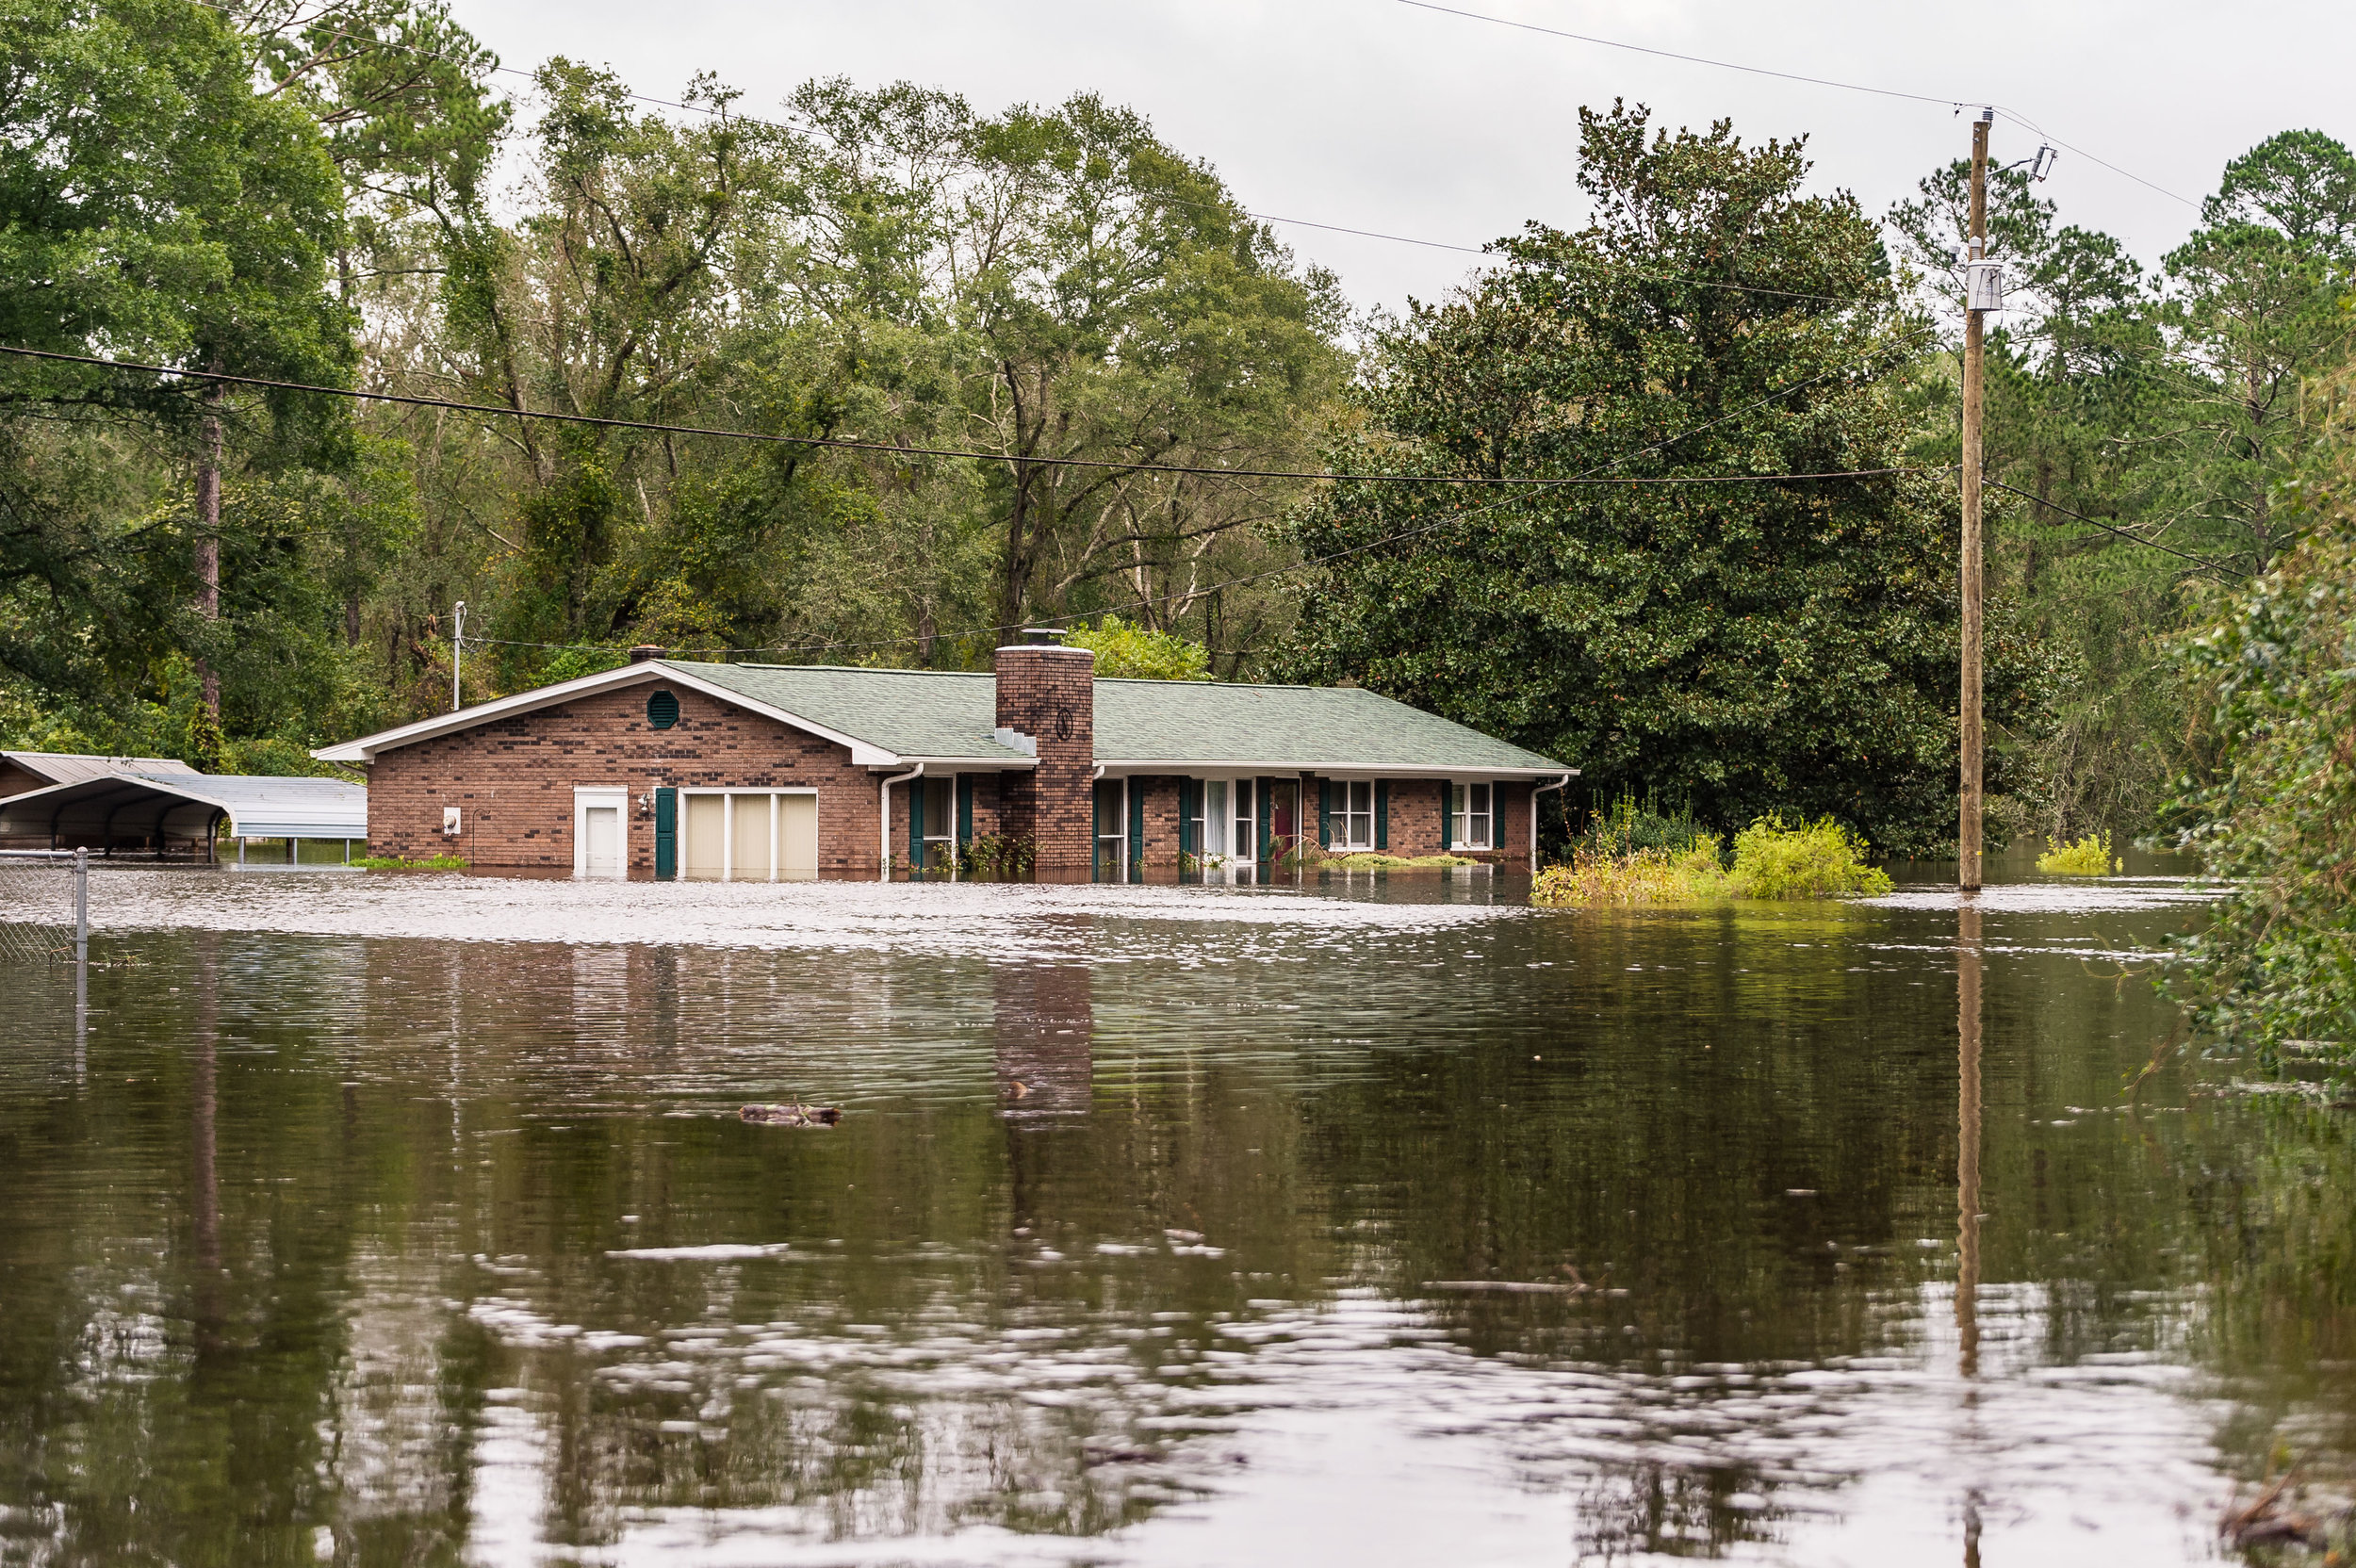 September 16, 2018, Pollocksville, NC- Trent Acres Drive covered by rising flood waters.